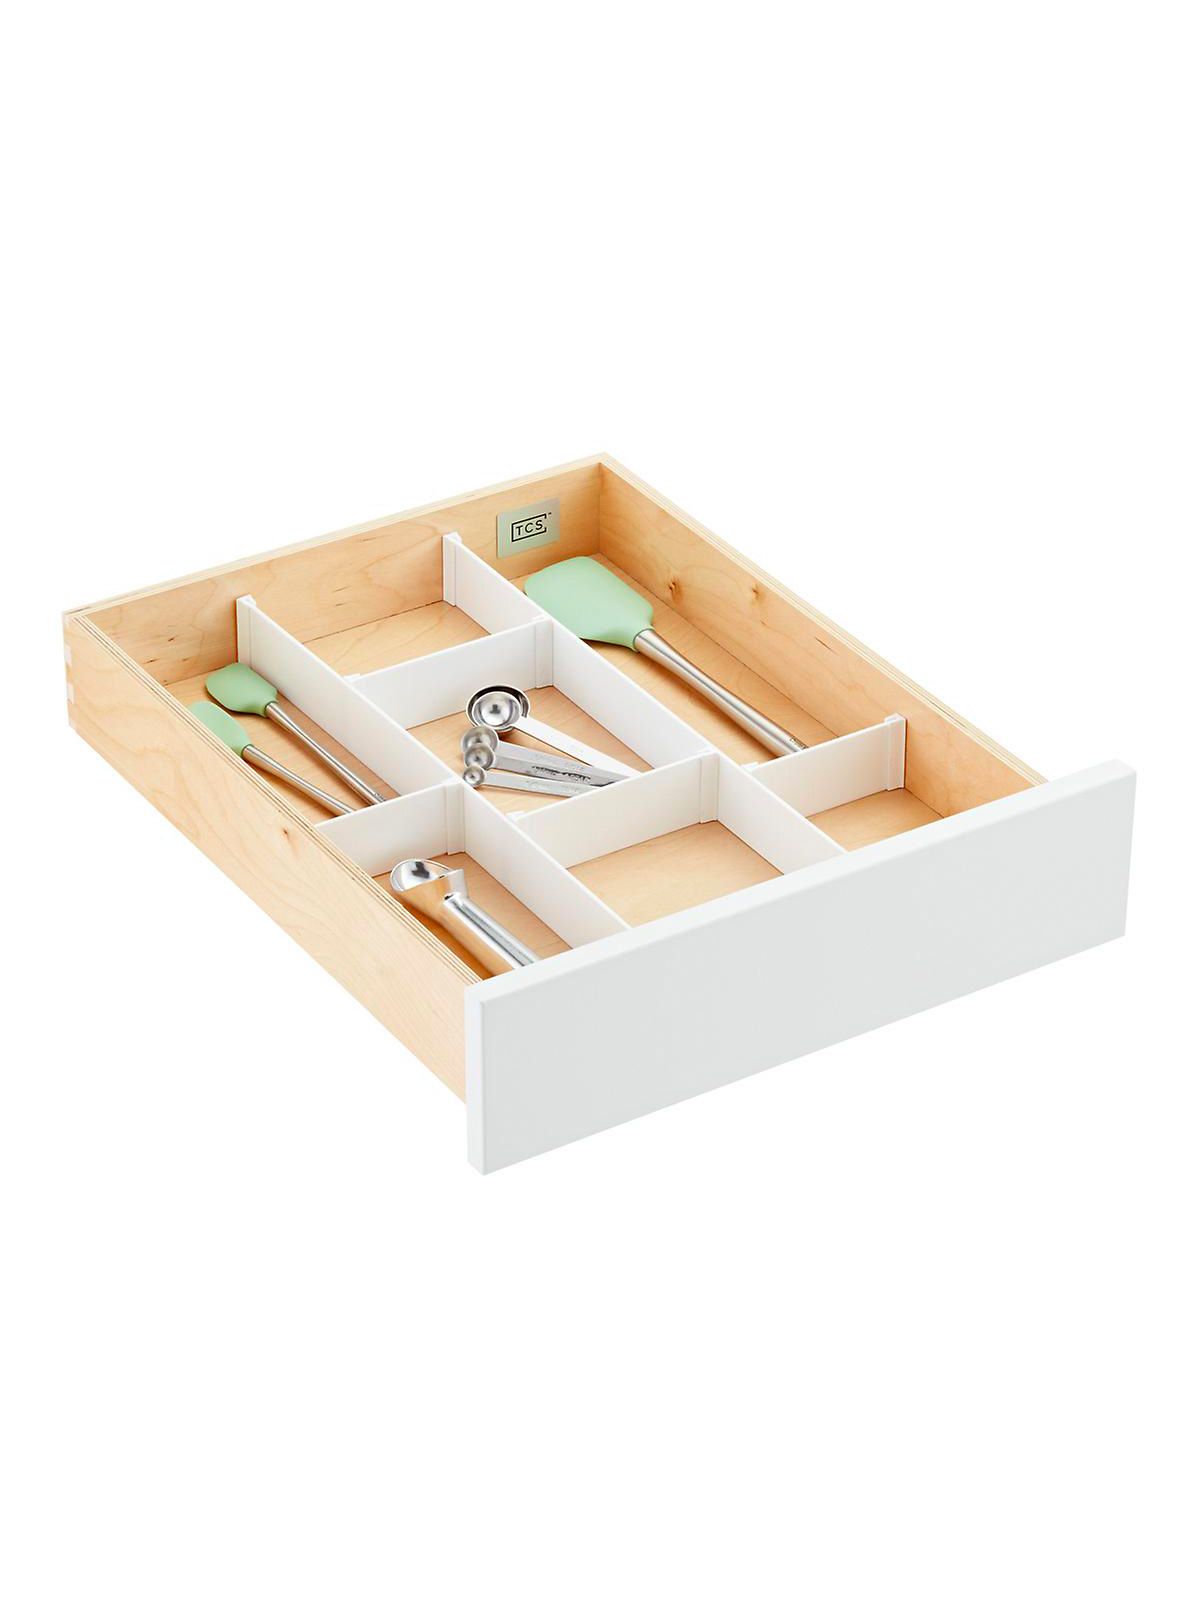 Best Container Store Organizers, Custom Drawer Dividers